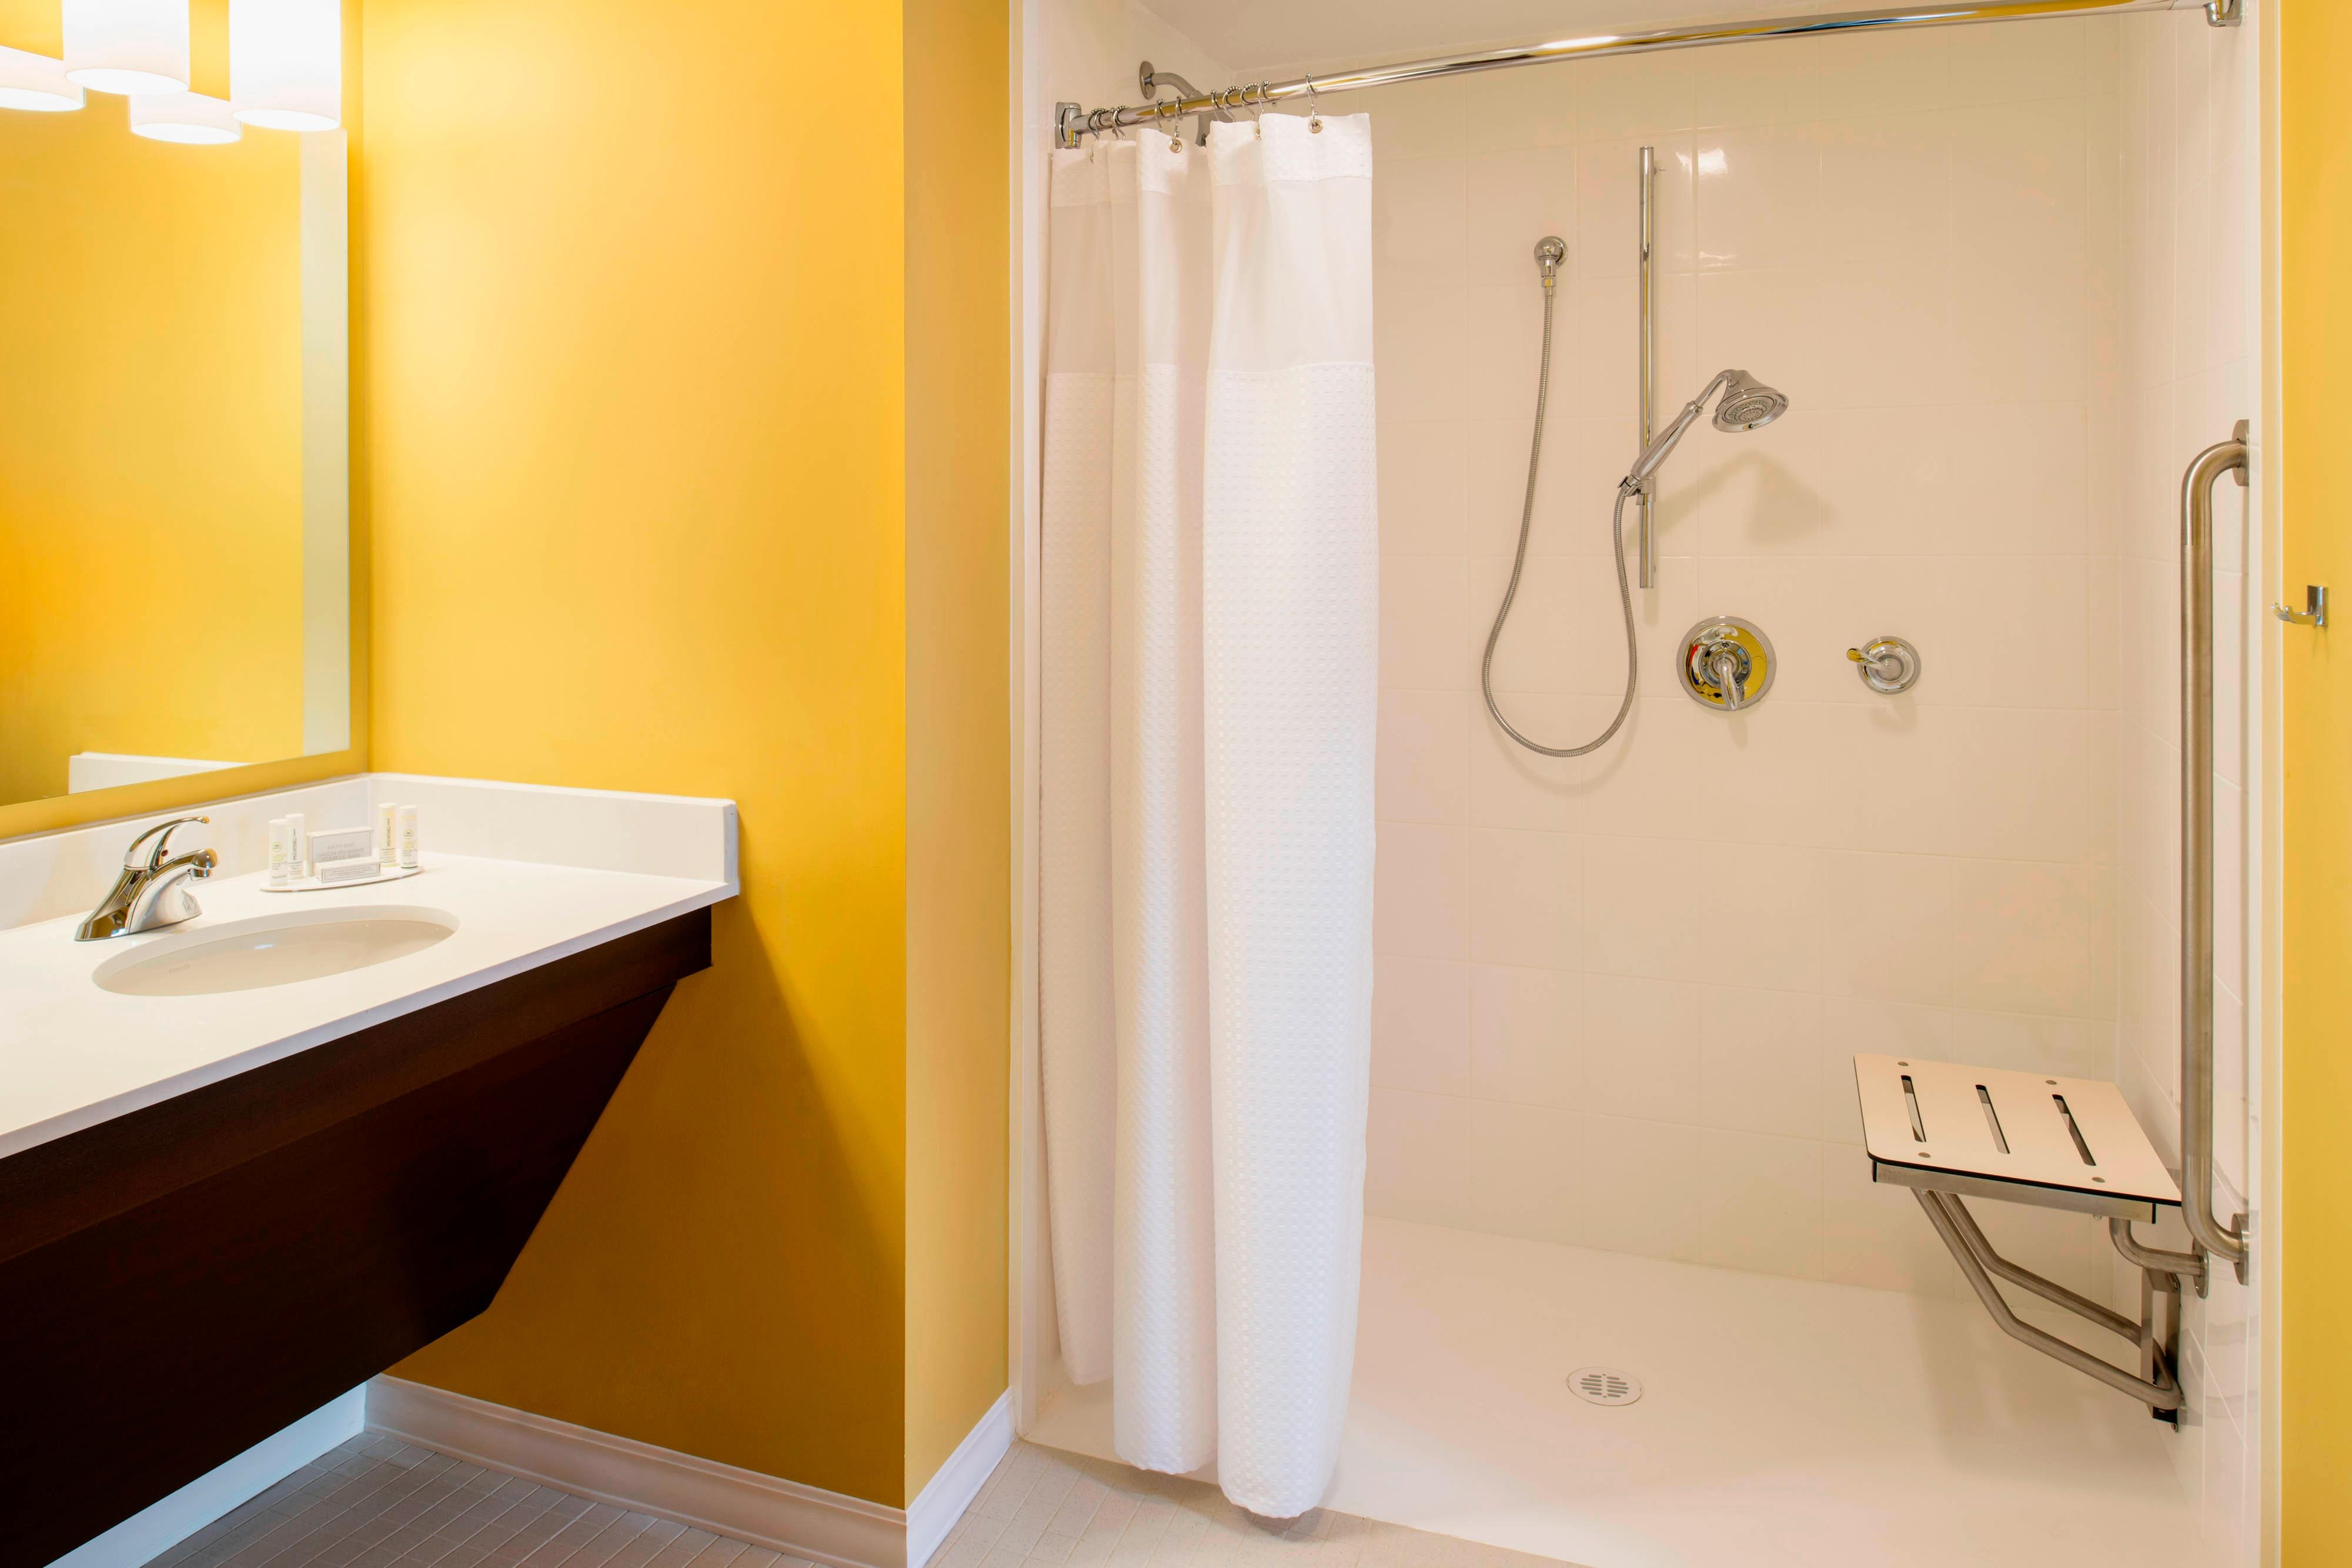 Accessible One-Bedroom Suite –Bathroom with Roll-in Shower